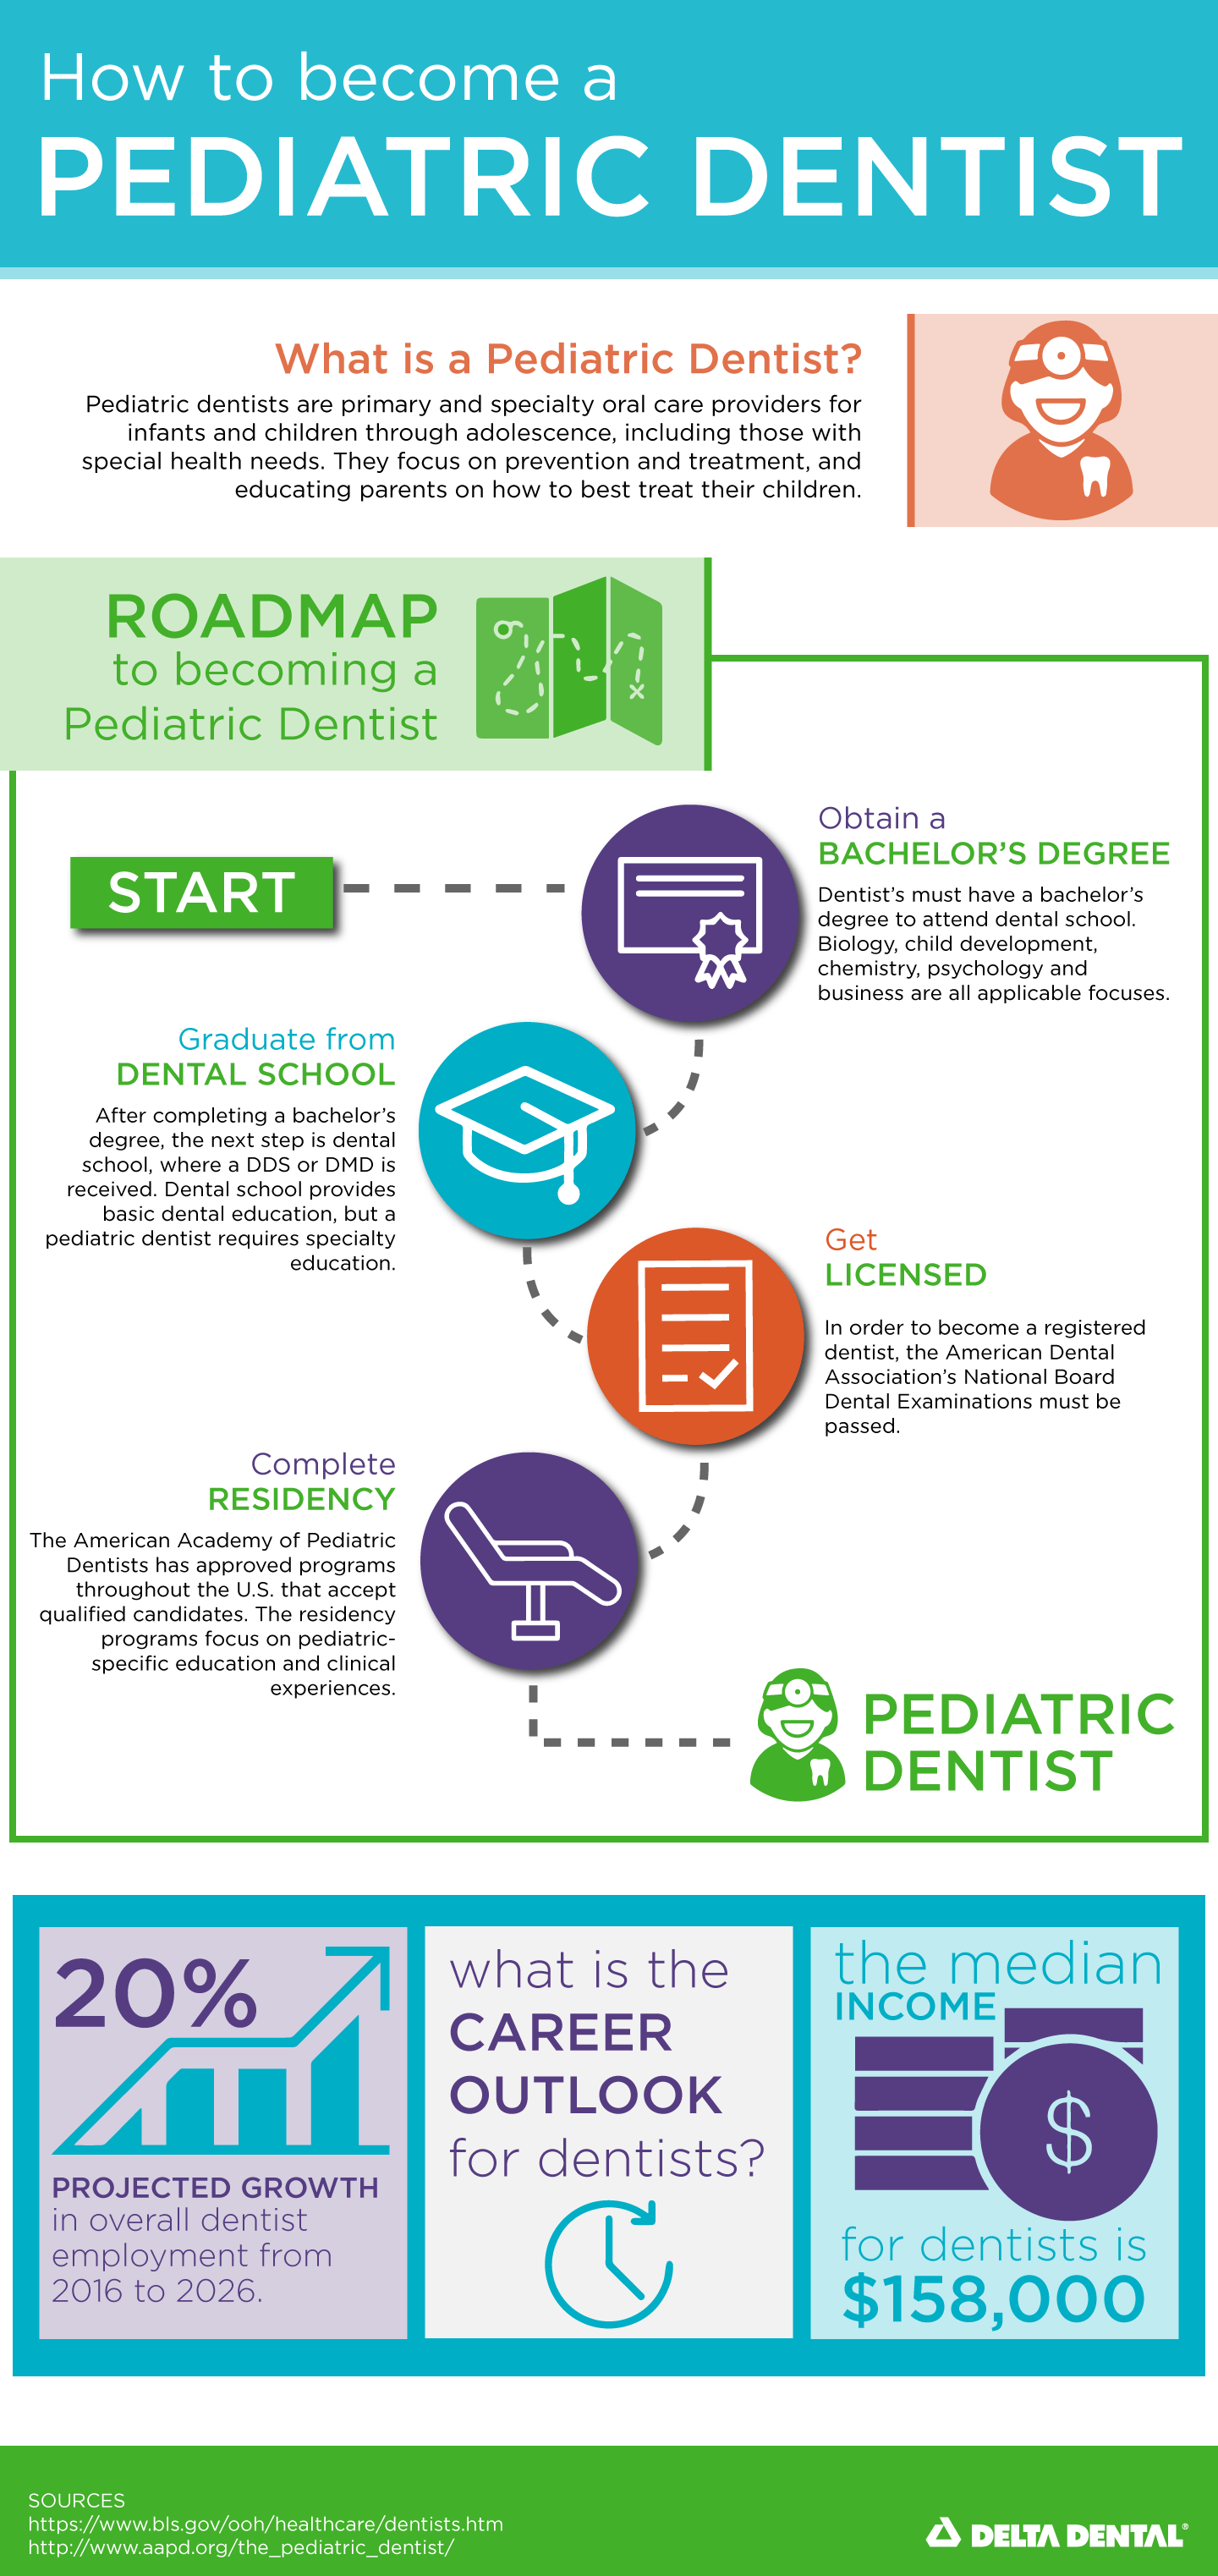 How to Become a Pediatric Dentist [INFOGRAPHIC]